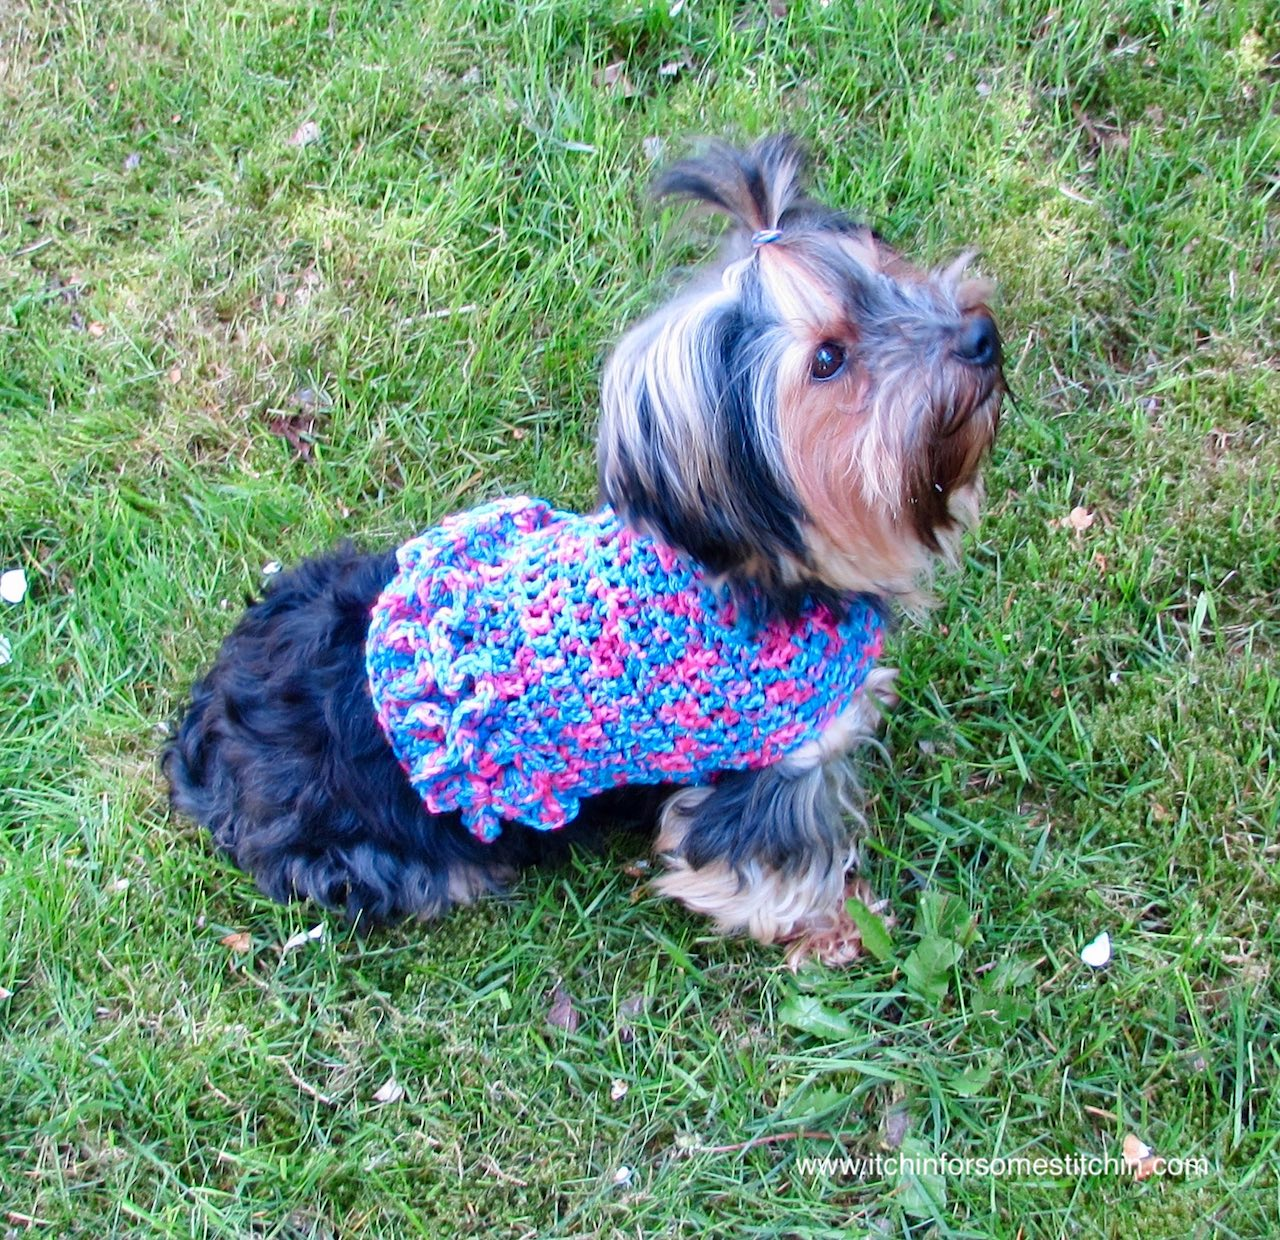 03e104f3d97a Years ago I designed a small dog sweater for my little boy Yorkshire  Terriers. I have two of them, Jack & Jake. Then a few years later came  Vanessa, ...